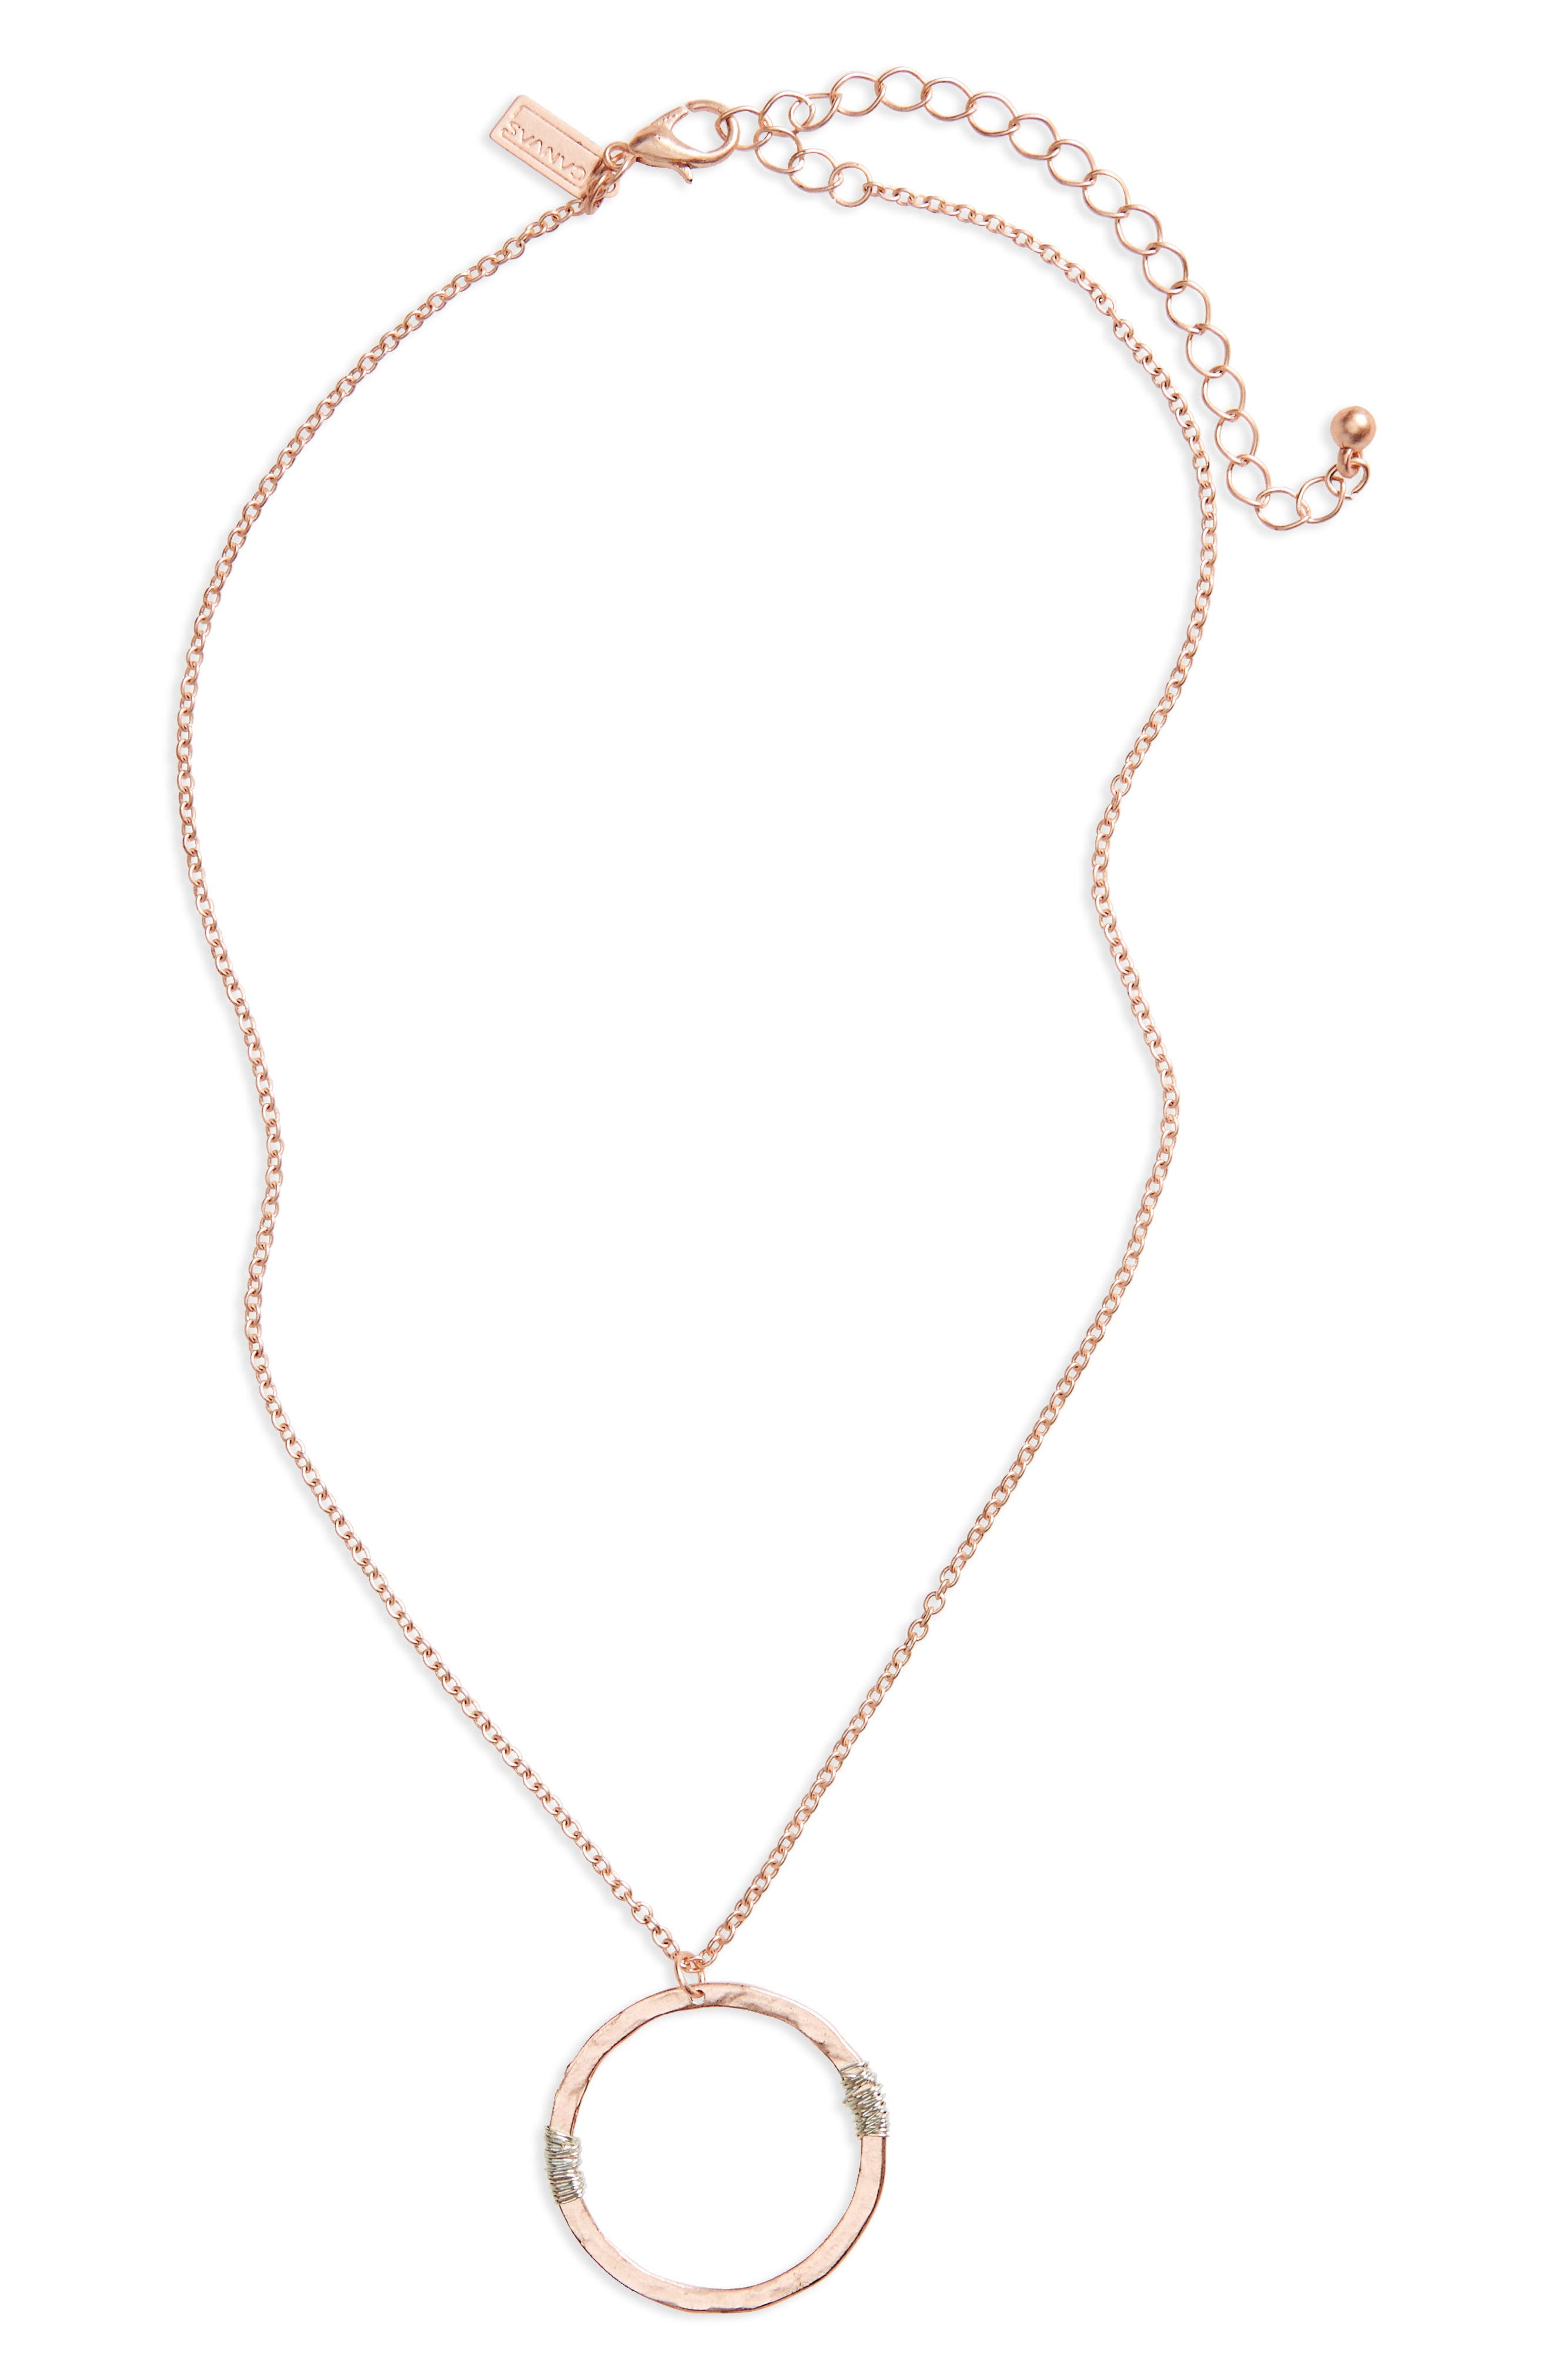 Wire Wrap Open Circle Pendant Necklace,                         Main,                         color, Rose Gold